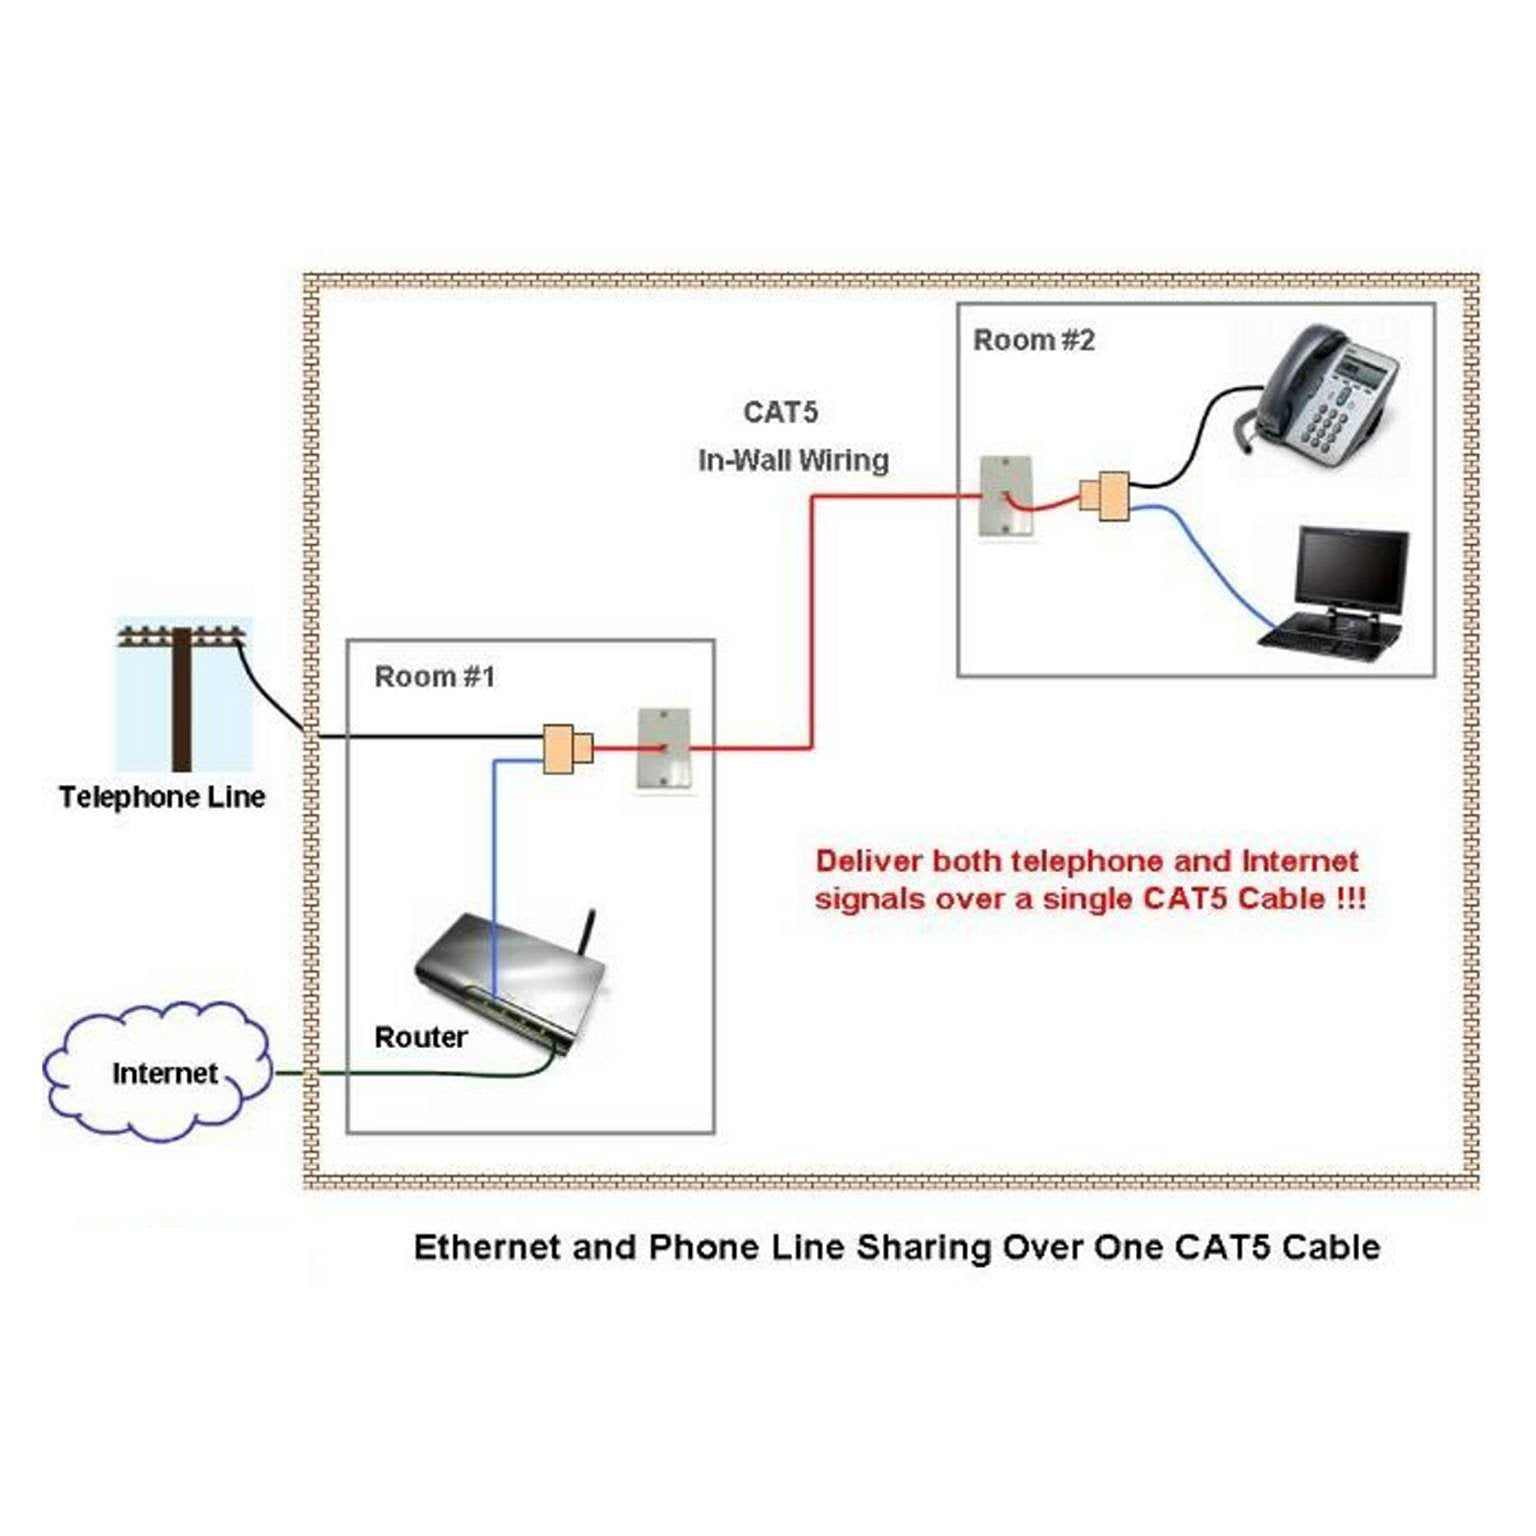 Telephone Rj11 Splitter Wiring Diagram Diagrams Img Extension Also Schematic Connector Rj45 Cable Sharing Kit